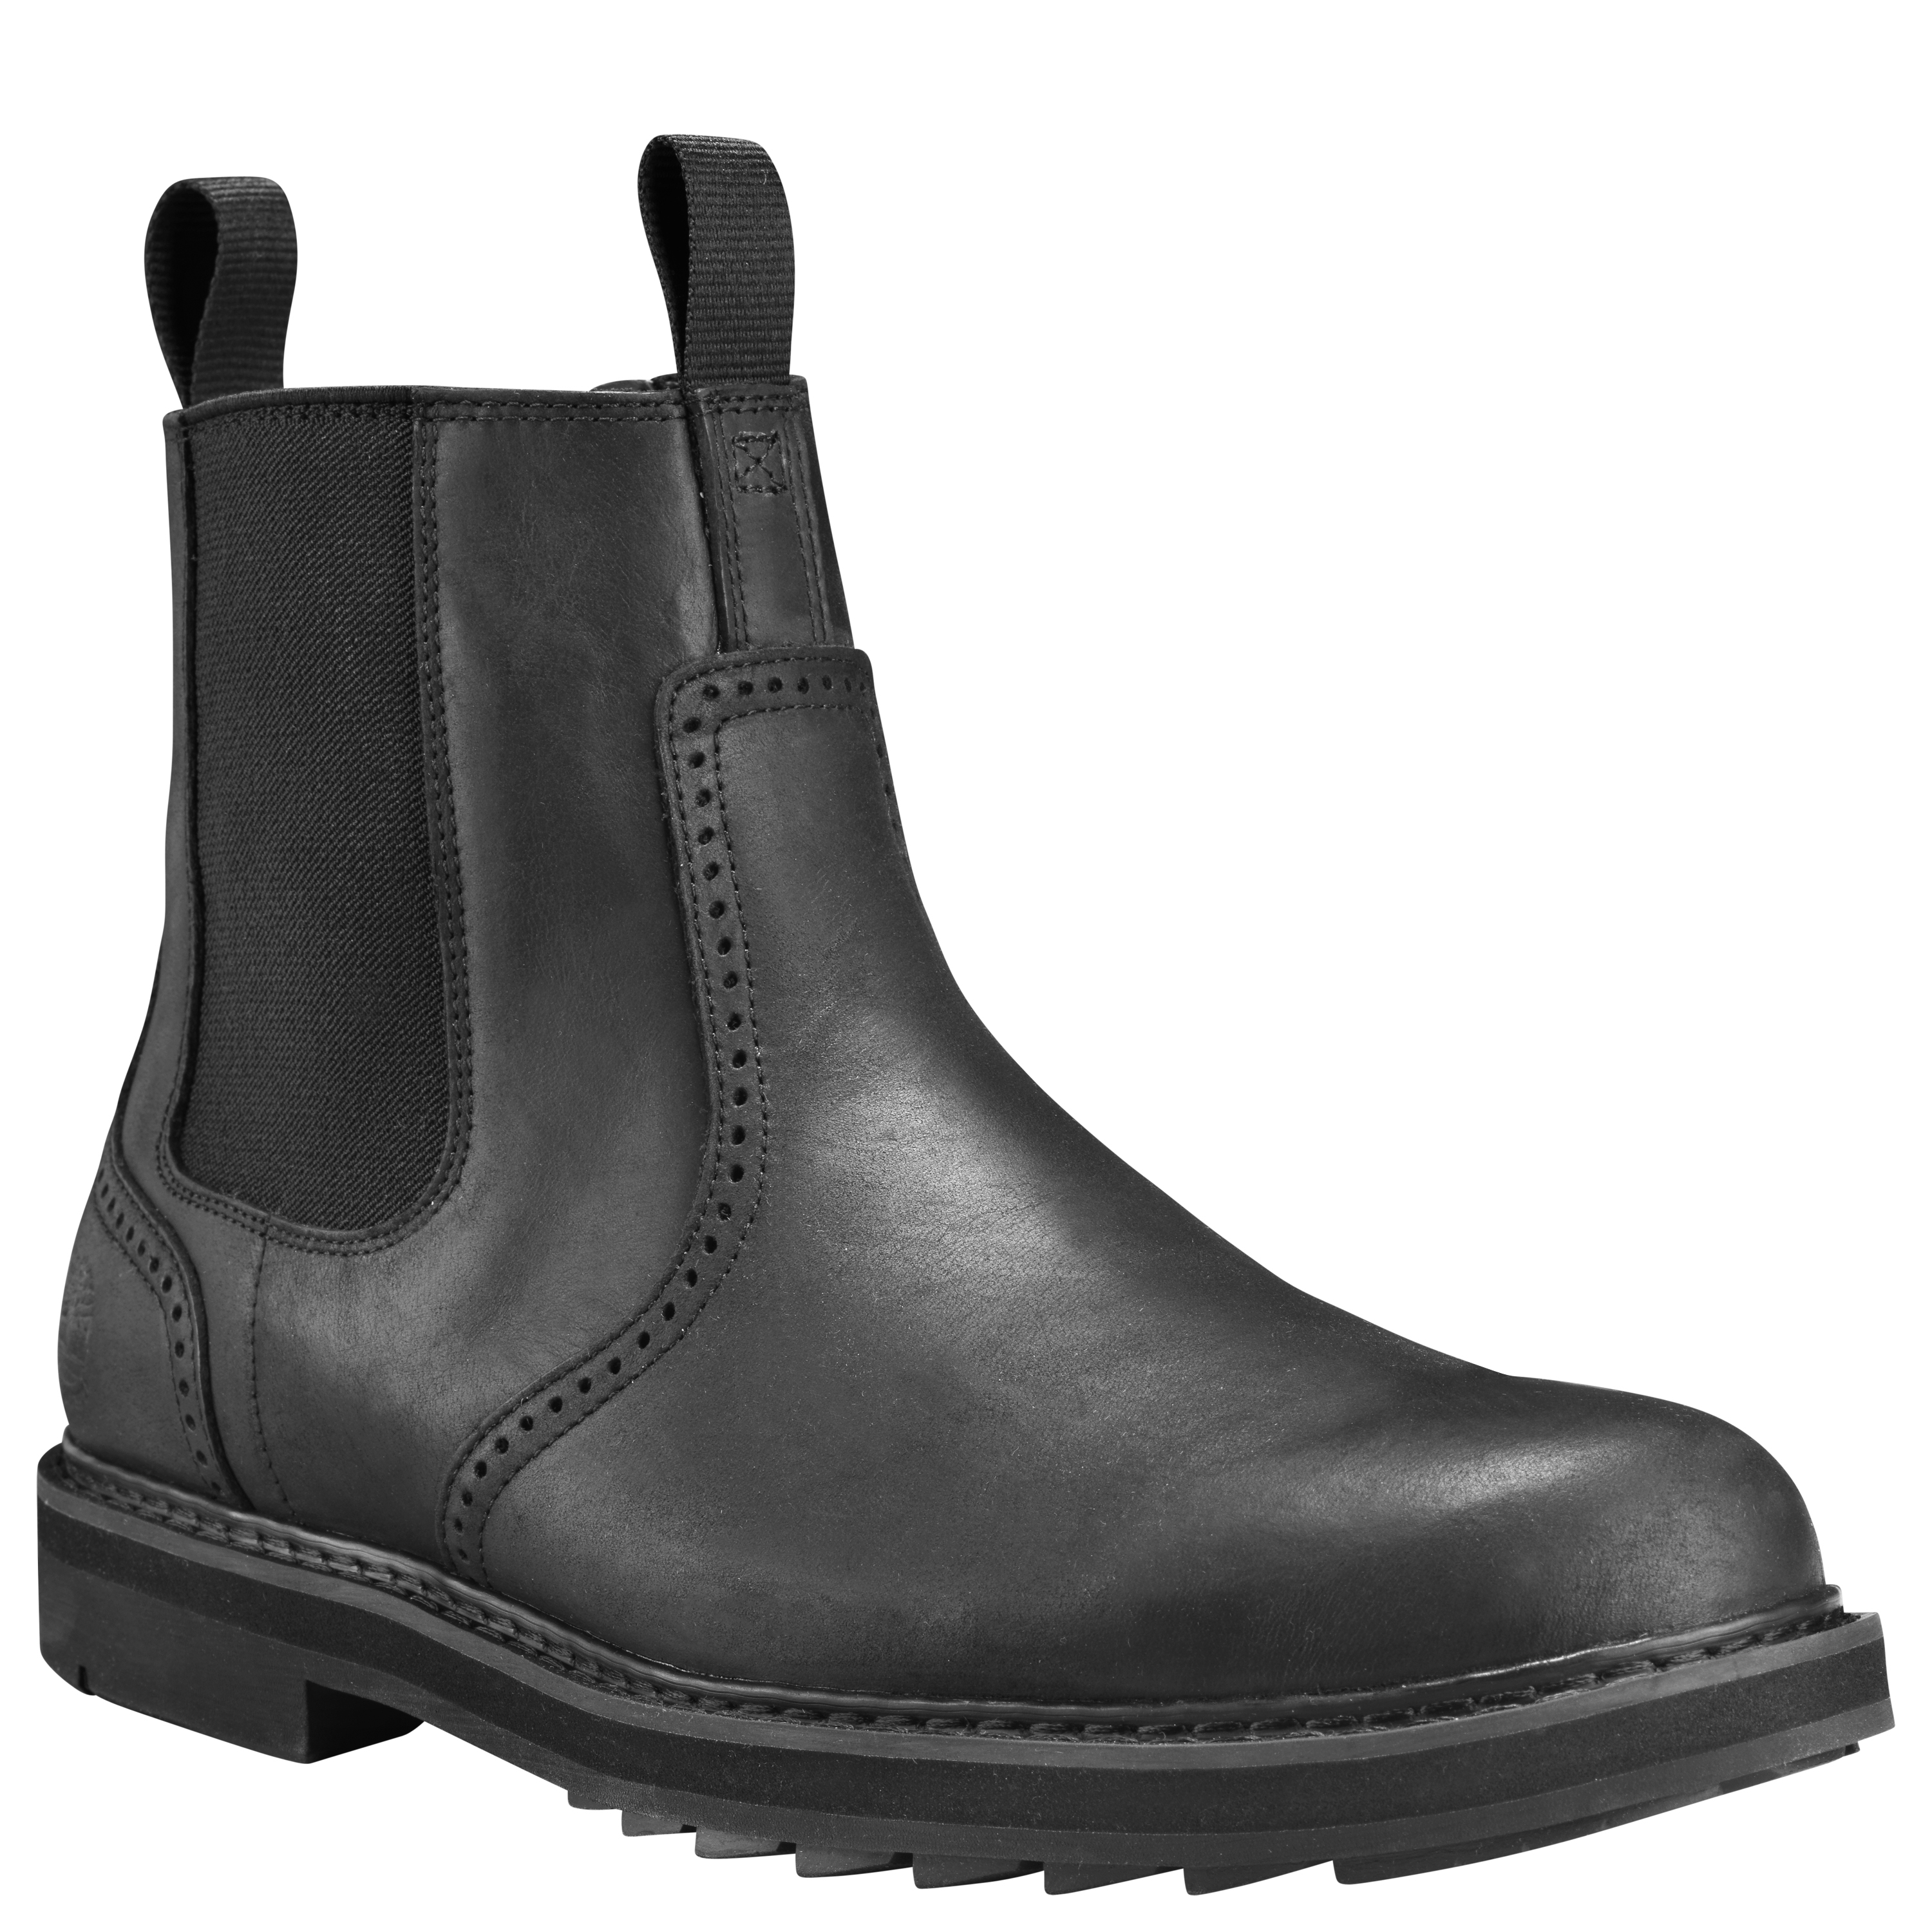 Timberland Squall Canyon Waterproof Side Zip Chelsea Boot Men's